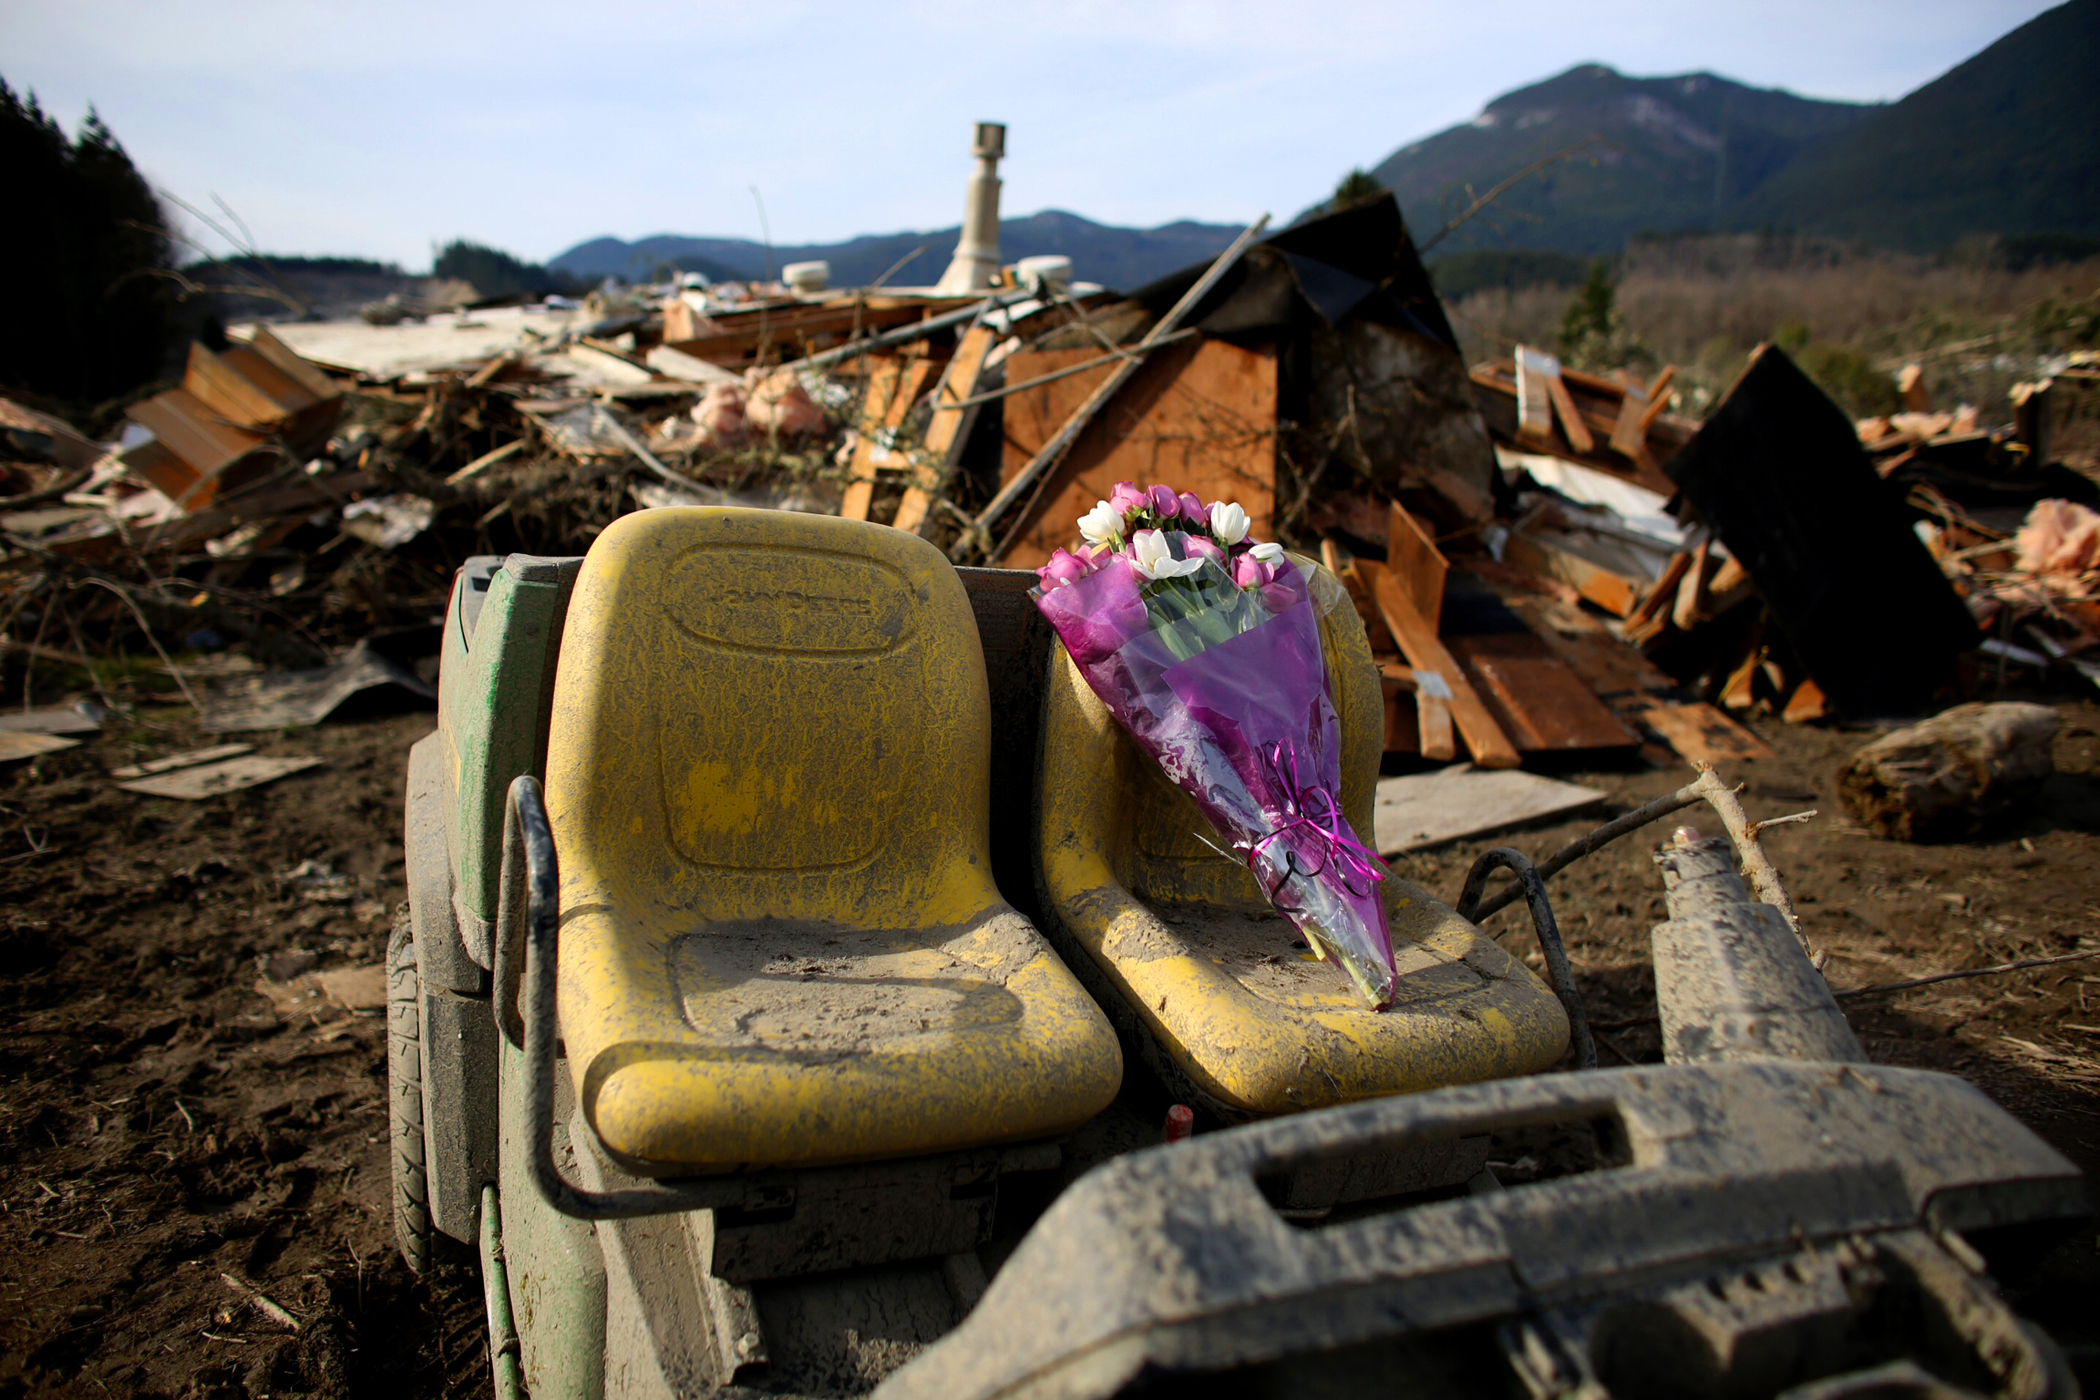 A bouquet of flowers left for victims sits perched on the seat of an abandoned vehicle in the wreckage of homes destroyed by Saturday's mudslide, Monday, March 24, 2014, near Oso, Wash.